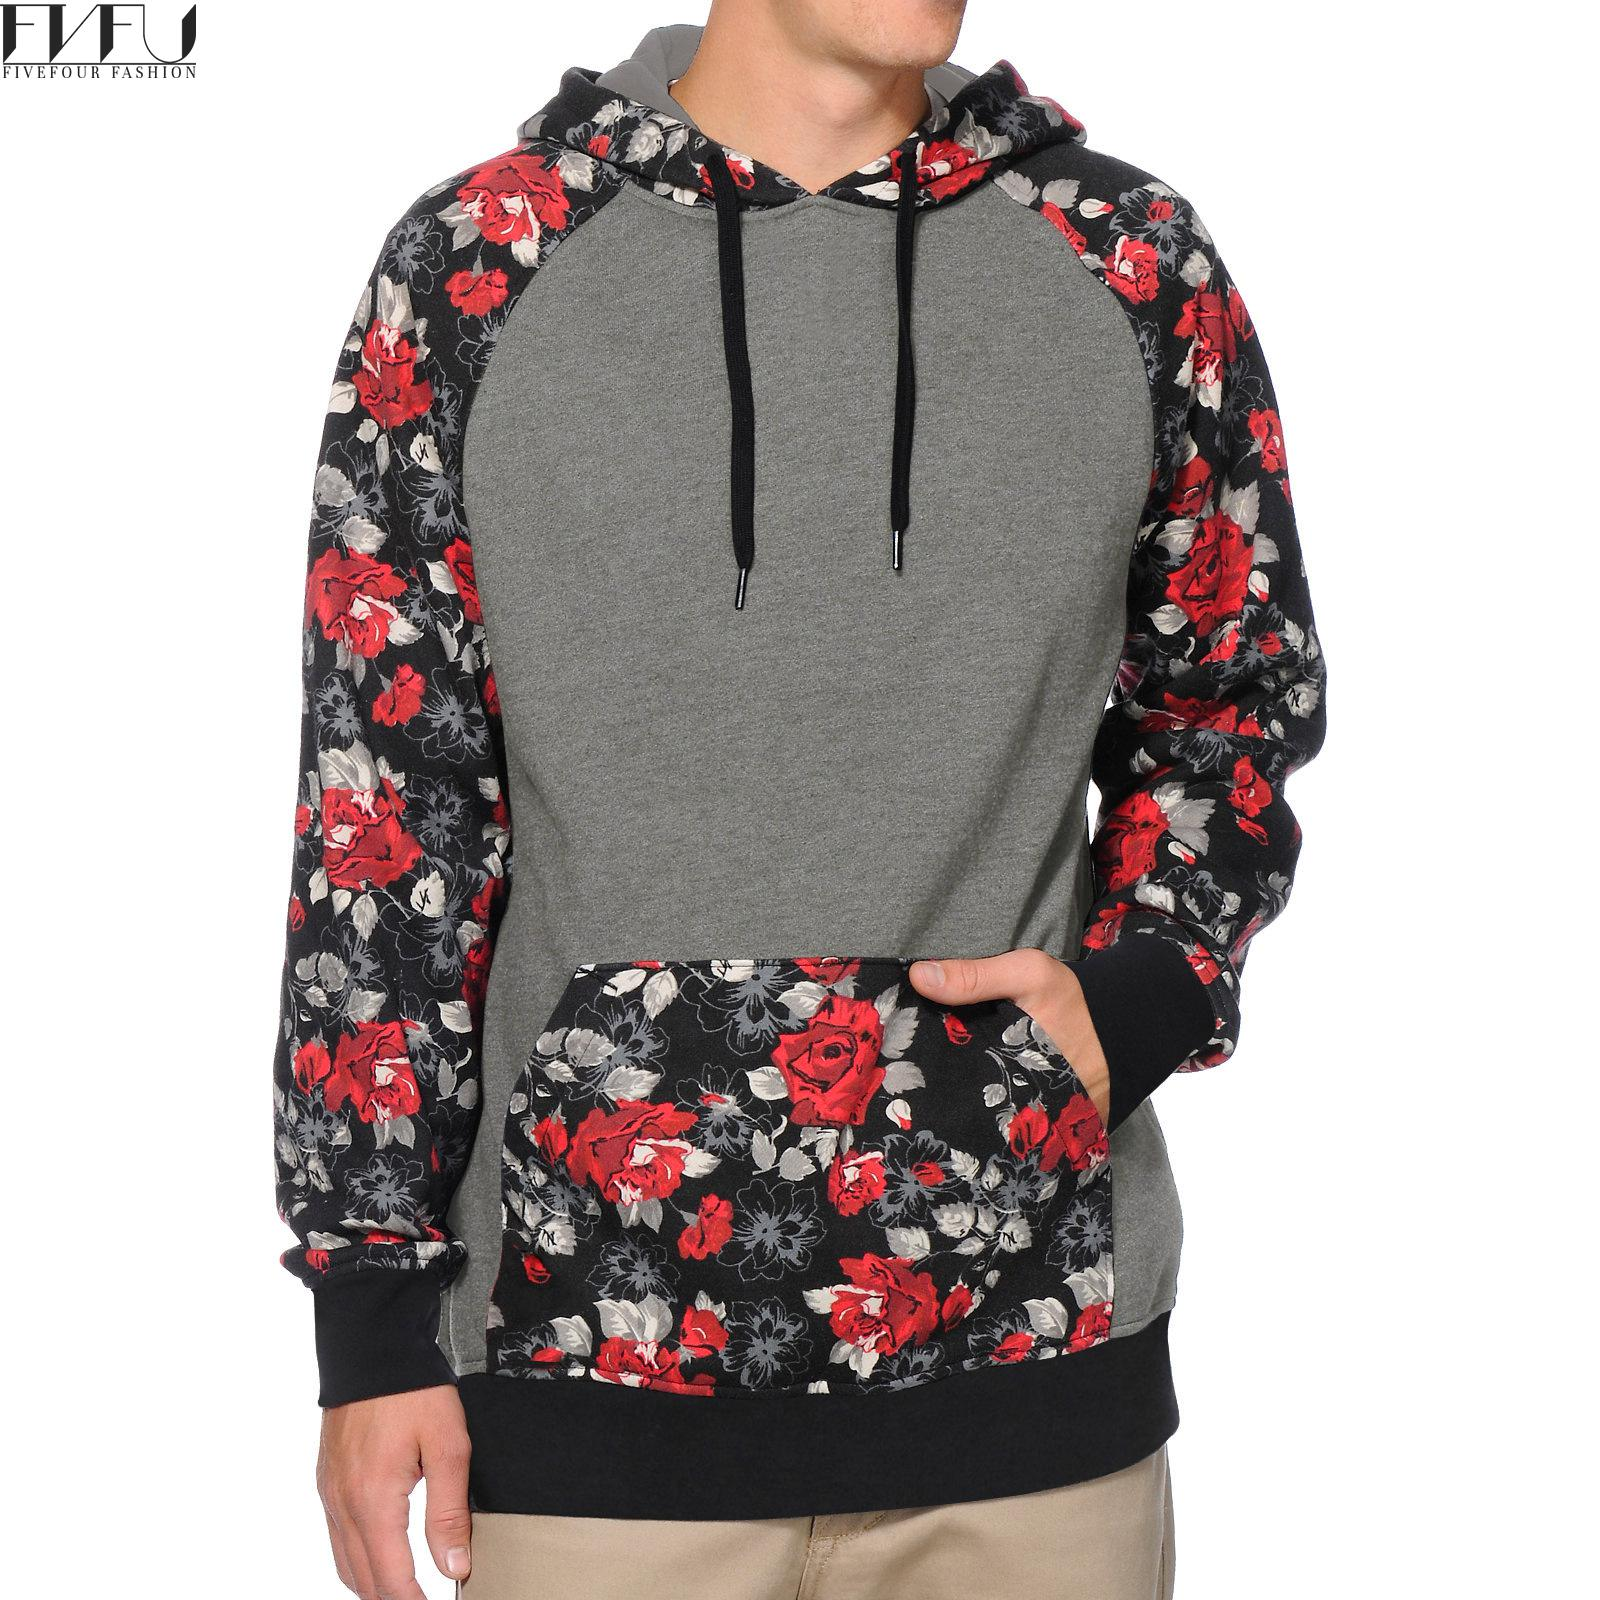 2017 Fashion Men's Hoodies Gray With Red Floral Print Sweatshirts Loose Casual Tracksuits Tops With Pockets Hoodie Plus Size